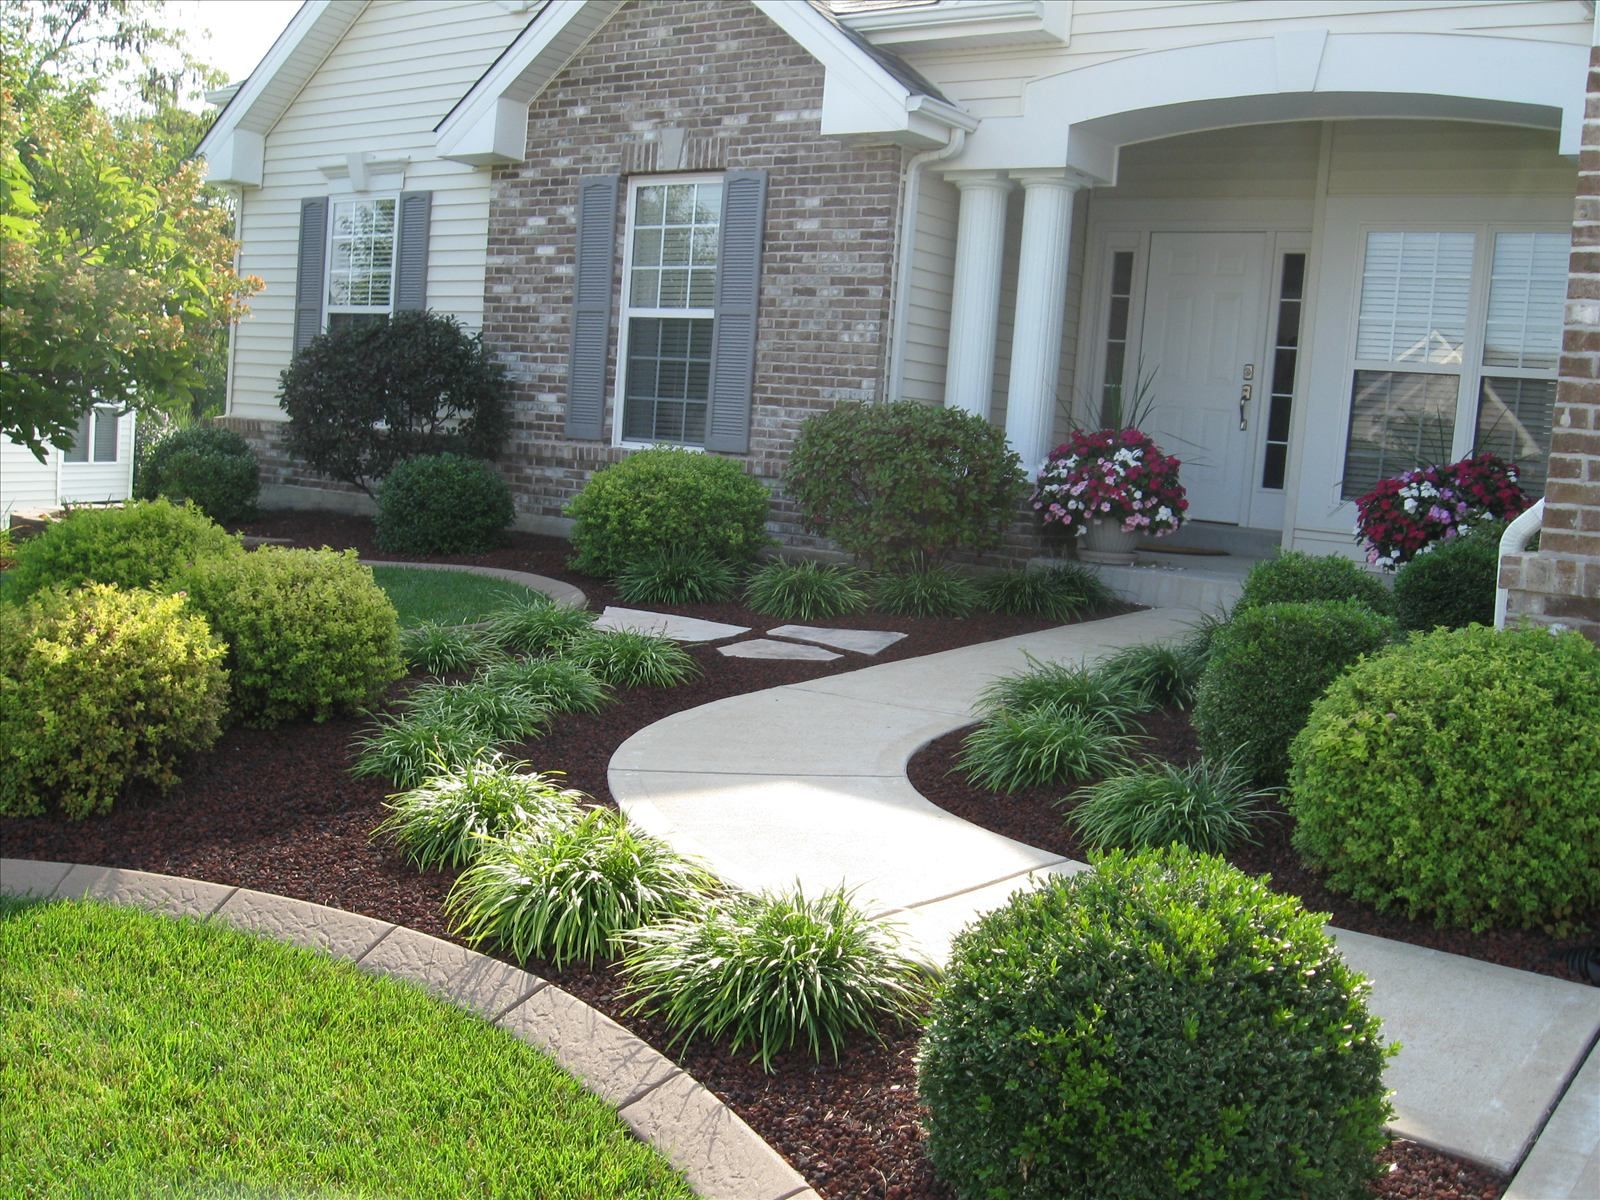 Landscape of house garden  Welcoming entry  Gardening  Landscaping  Pinterest  Front yards